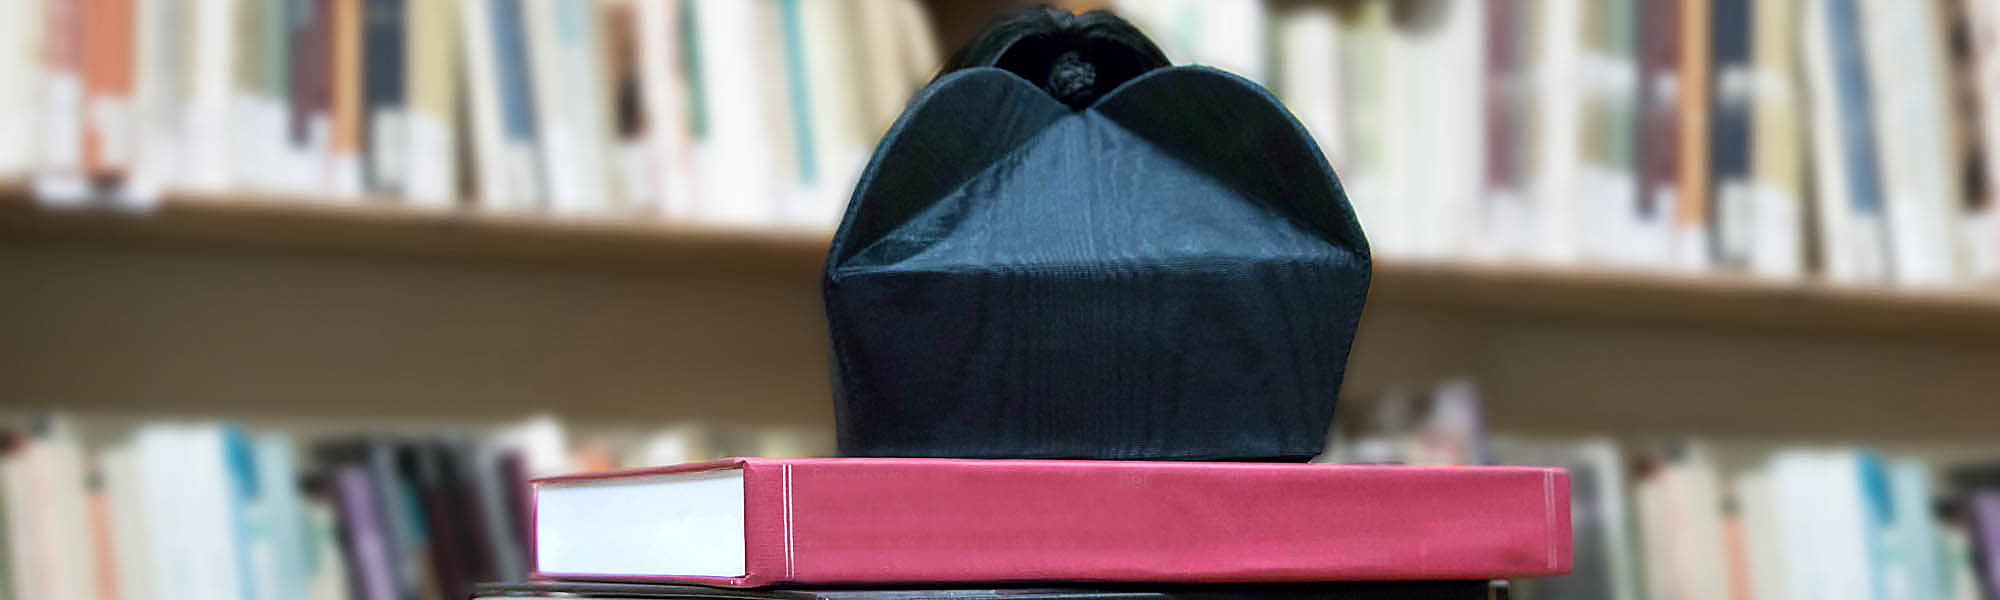 Graduation cap (biretta with four horns) on thesis, with books in background